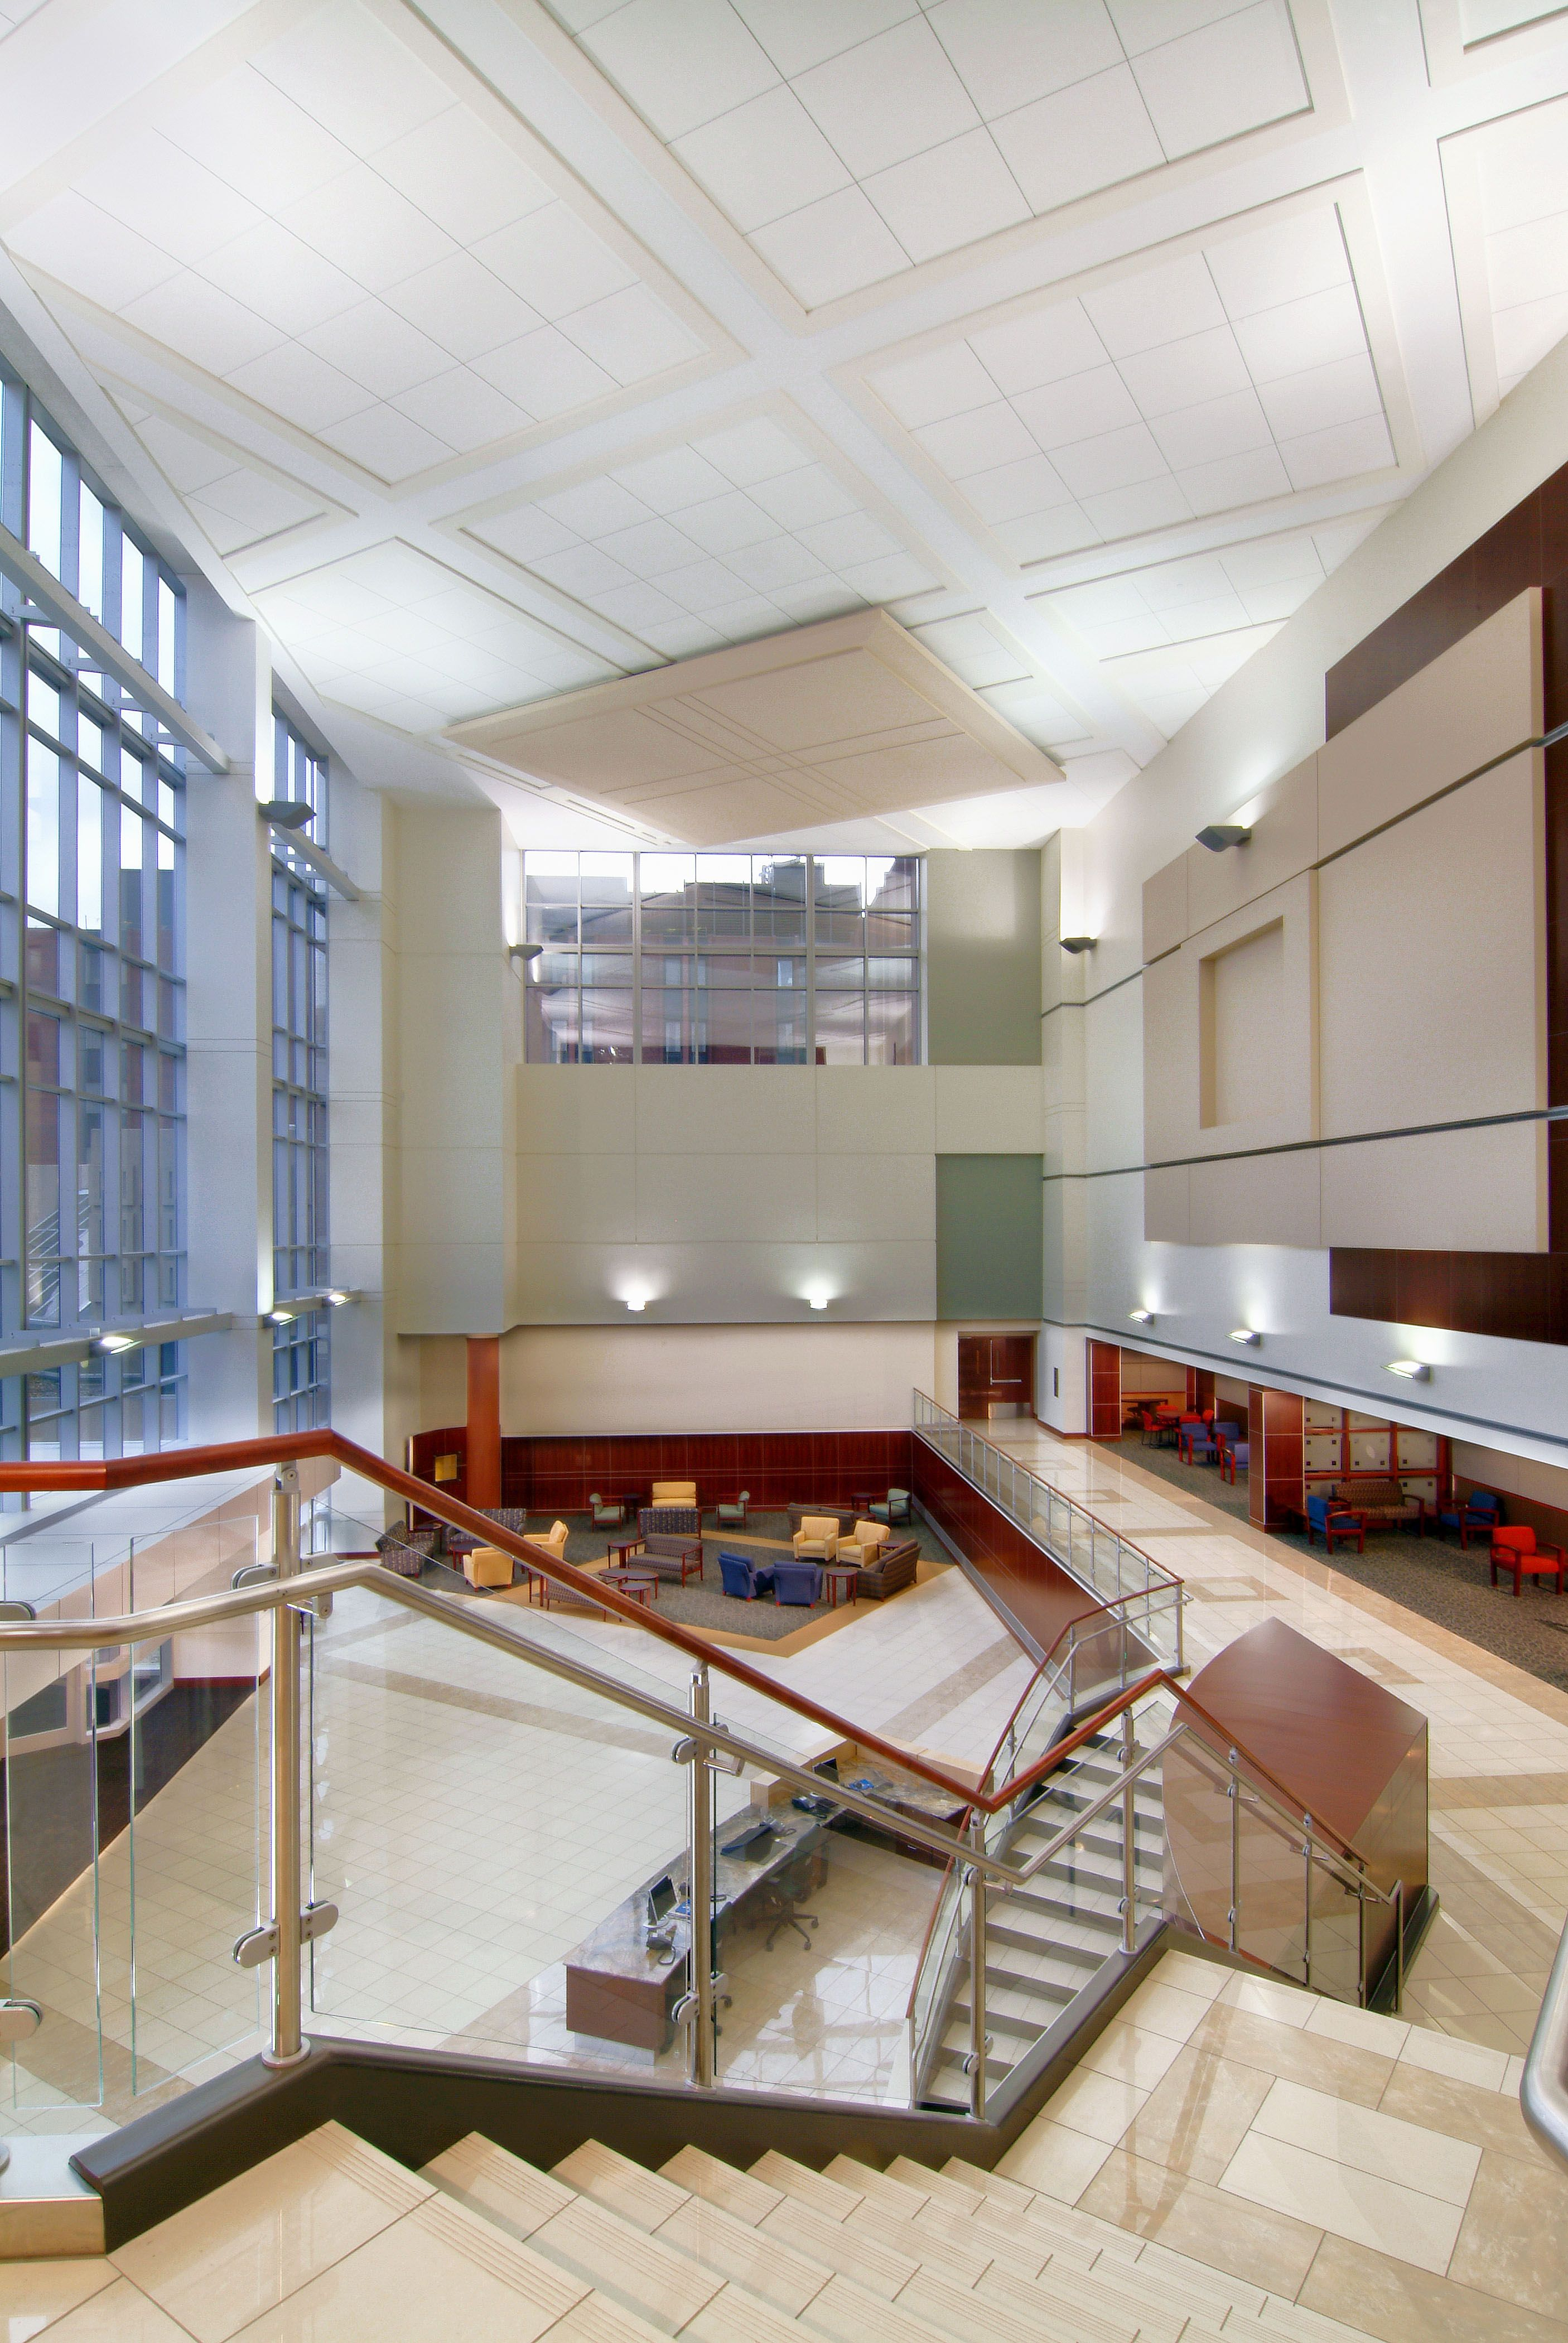 Design A Show Stopping Atrium With Marlite In 2021 Commercial Interior Design Wall Systems Interior Wall Design